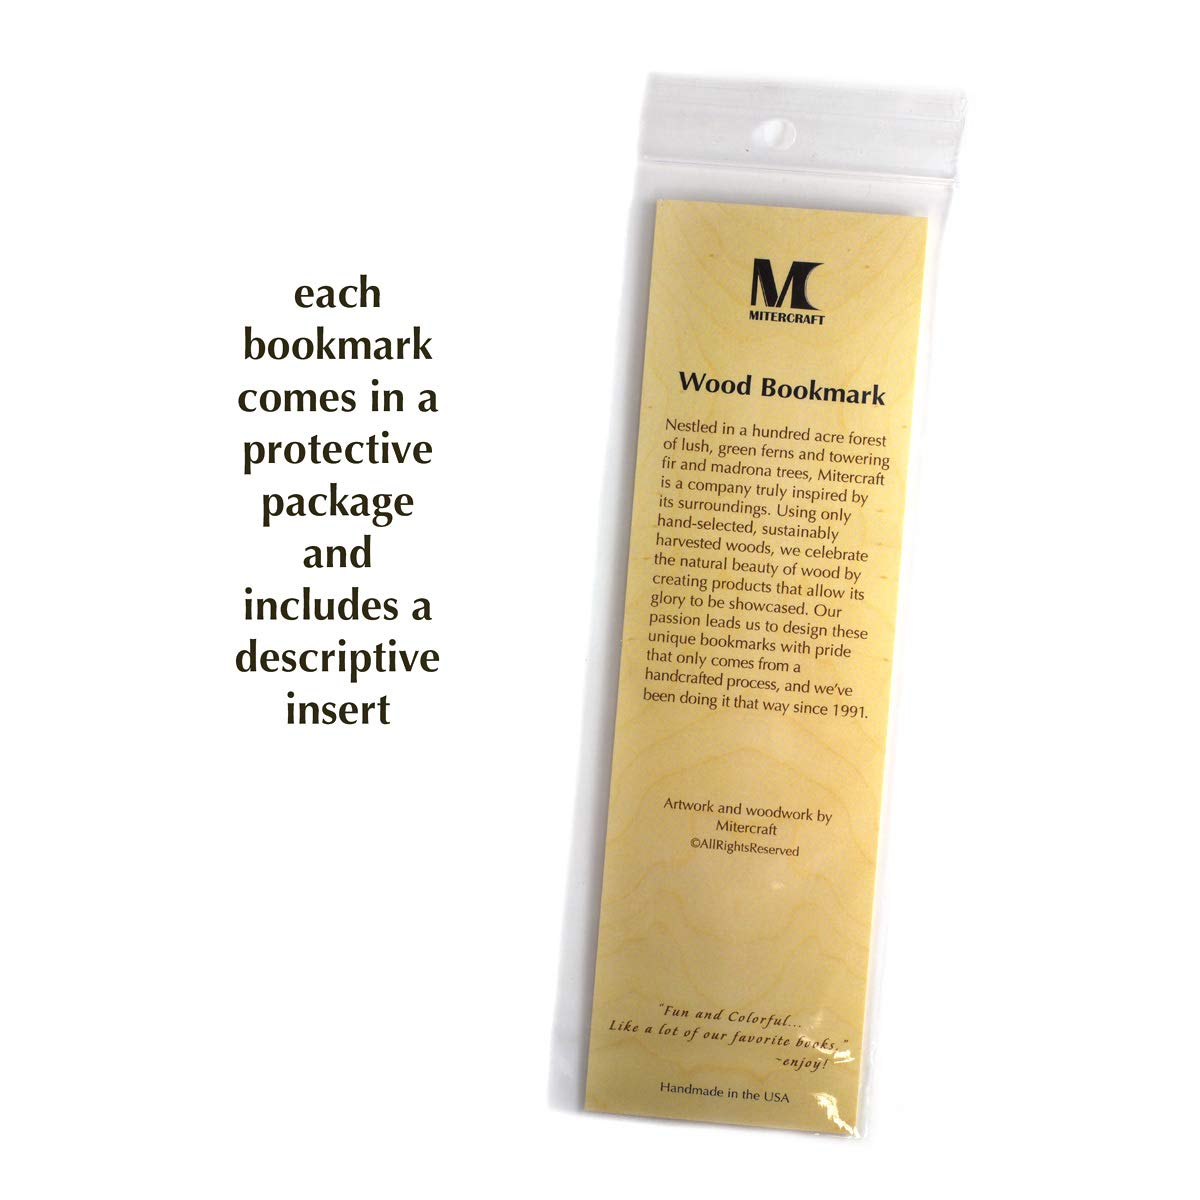 Mitercraft Engraved Wooden Bookmark - Yellowstone National Park, Wyoming with Tassel - Search B076VW33V3 to See Personalized Version. by Mitercraft (Image #6)